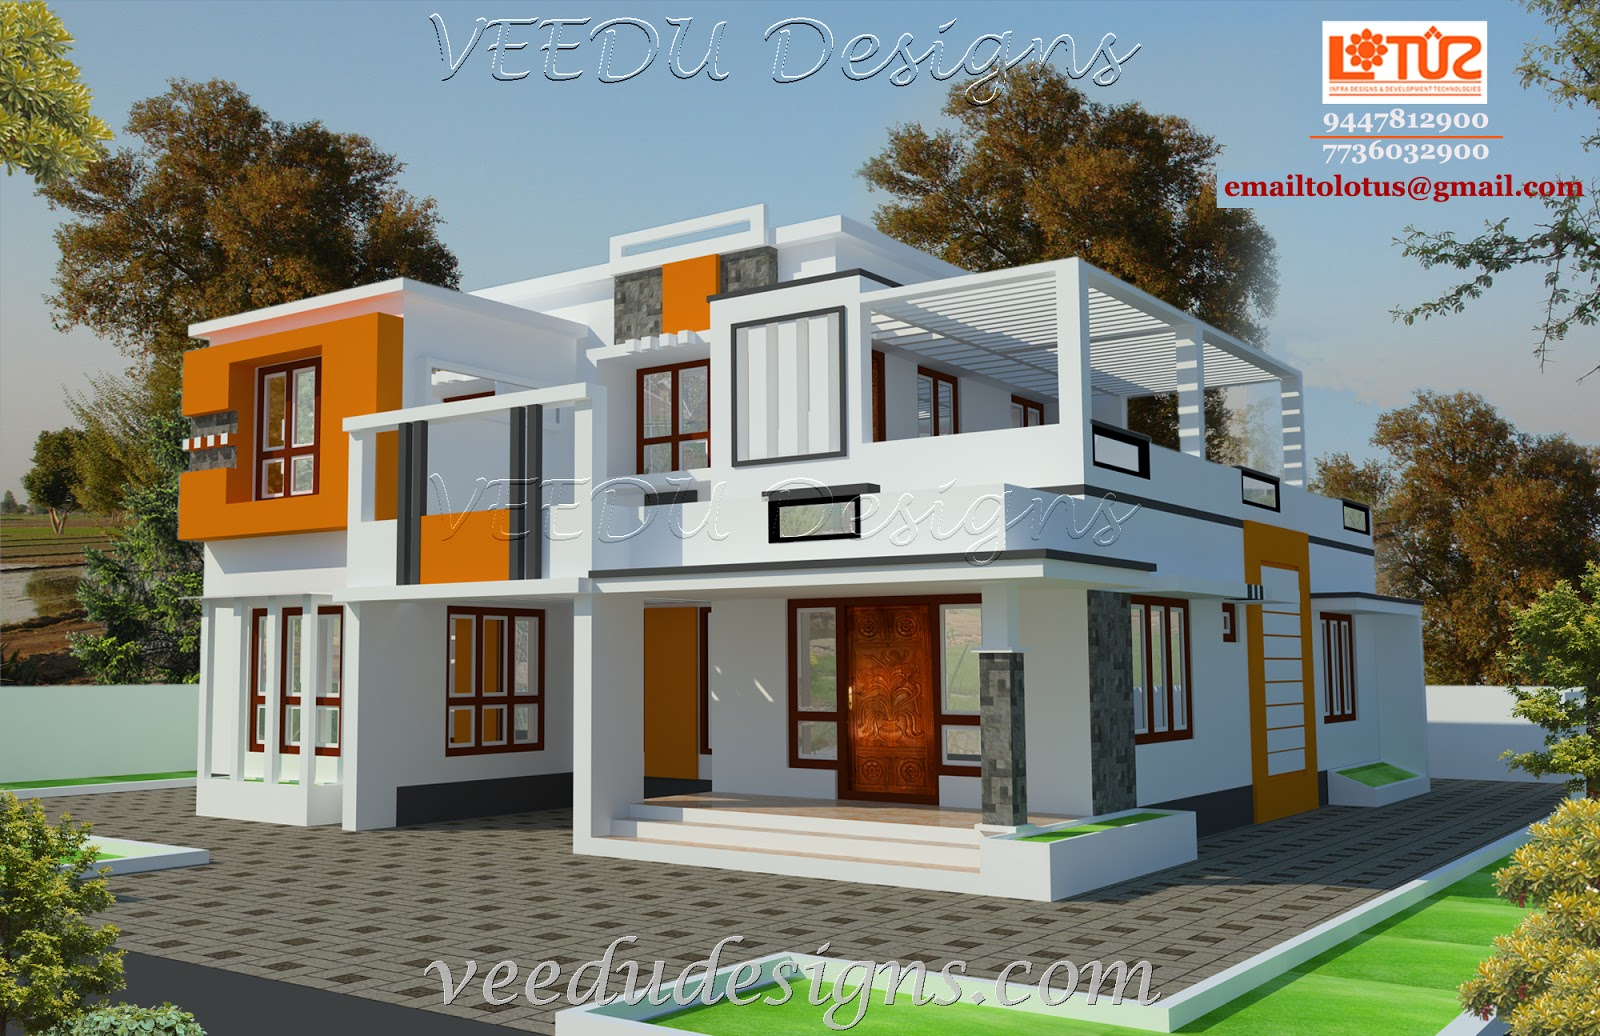 Veedu designs kerala home designs for Design from home